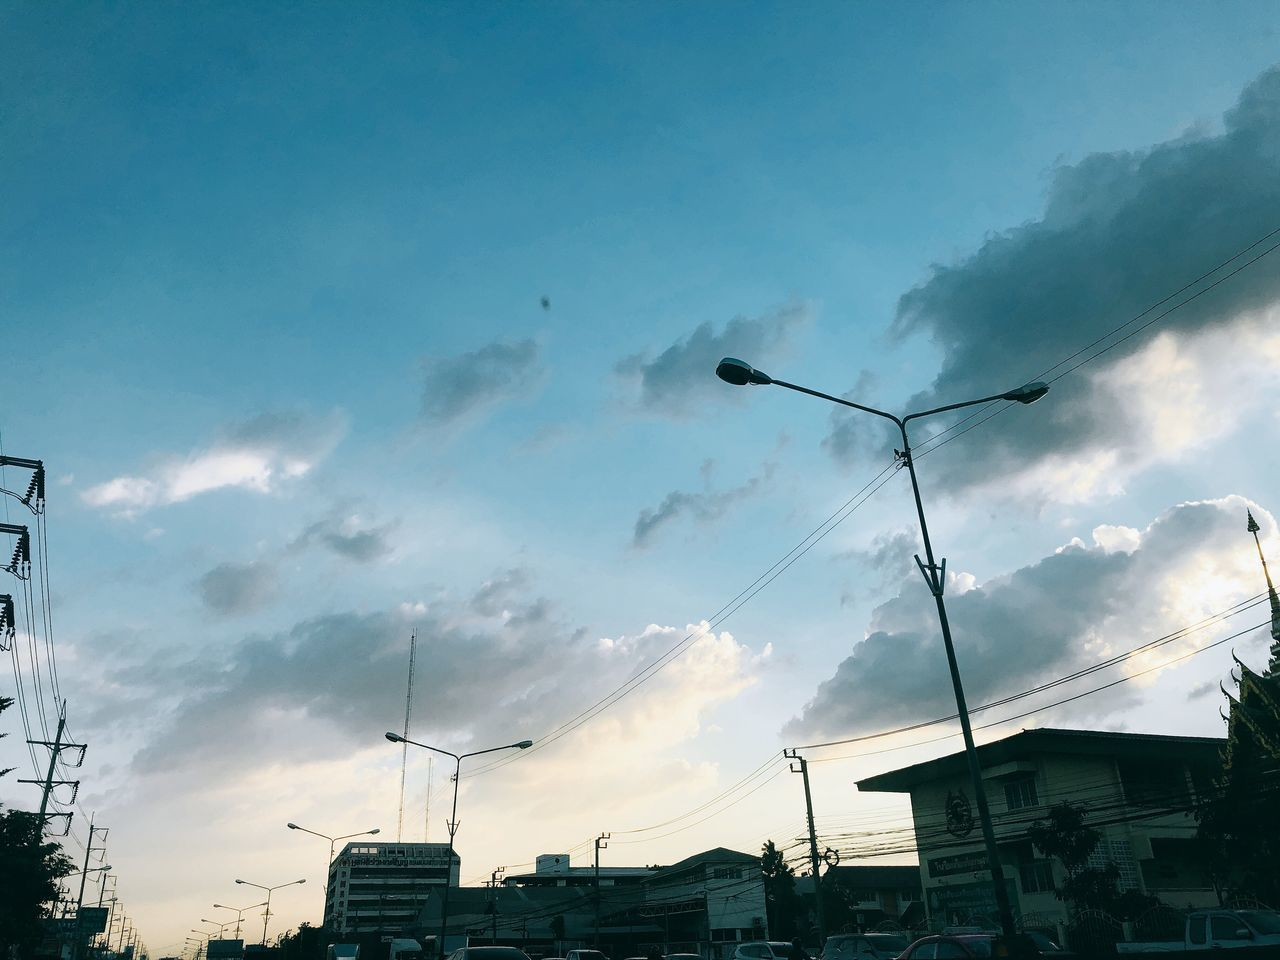 sky, cloud - sky, architecture, built structure, building exterior, low angle view, machinery, nature, no people, building, crane - construction machinery, construction industry, silhouette, city, street, street light, construction site, outdoors, industry, residential district, construction equipment